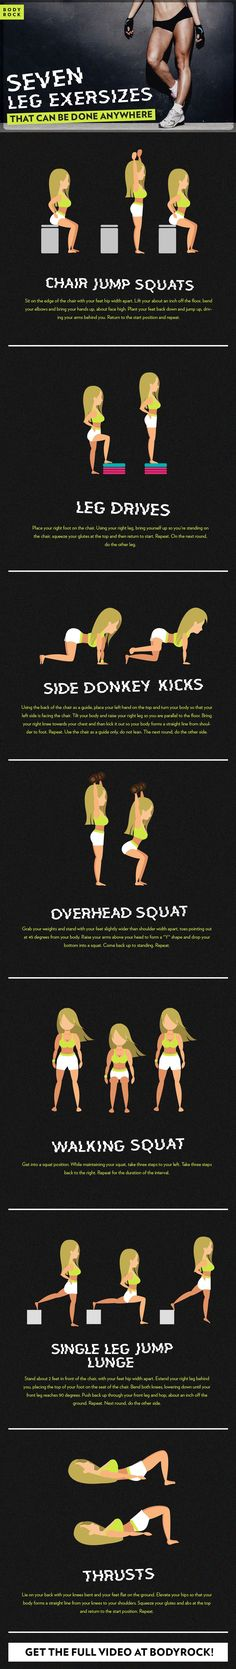 While sculpted abs and a toned tush seem to get the most glory, they aren't the only parts that matter. Your legs are just as important!